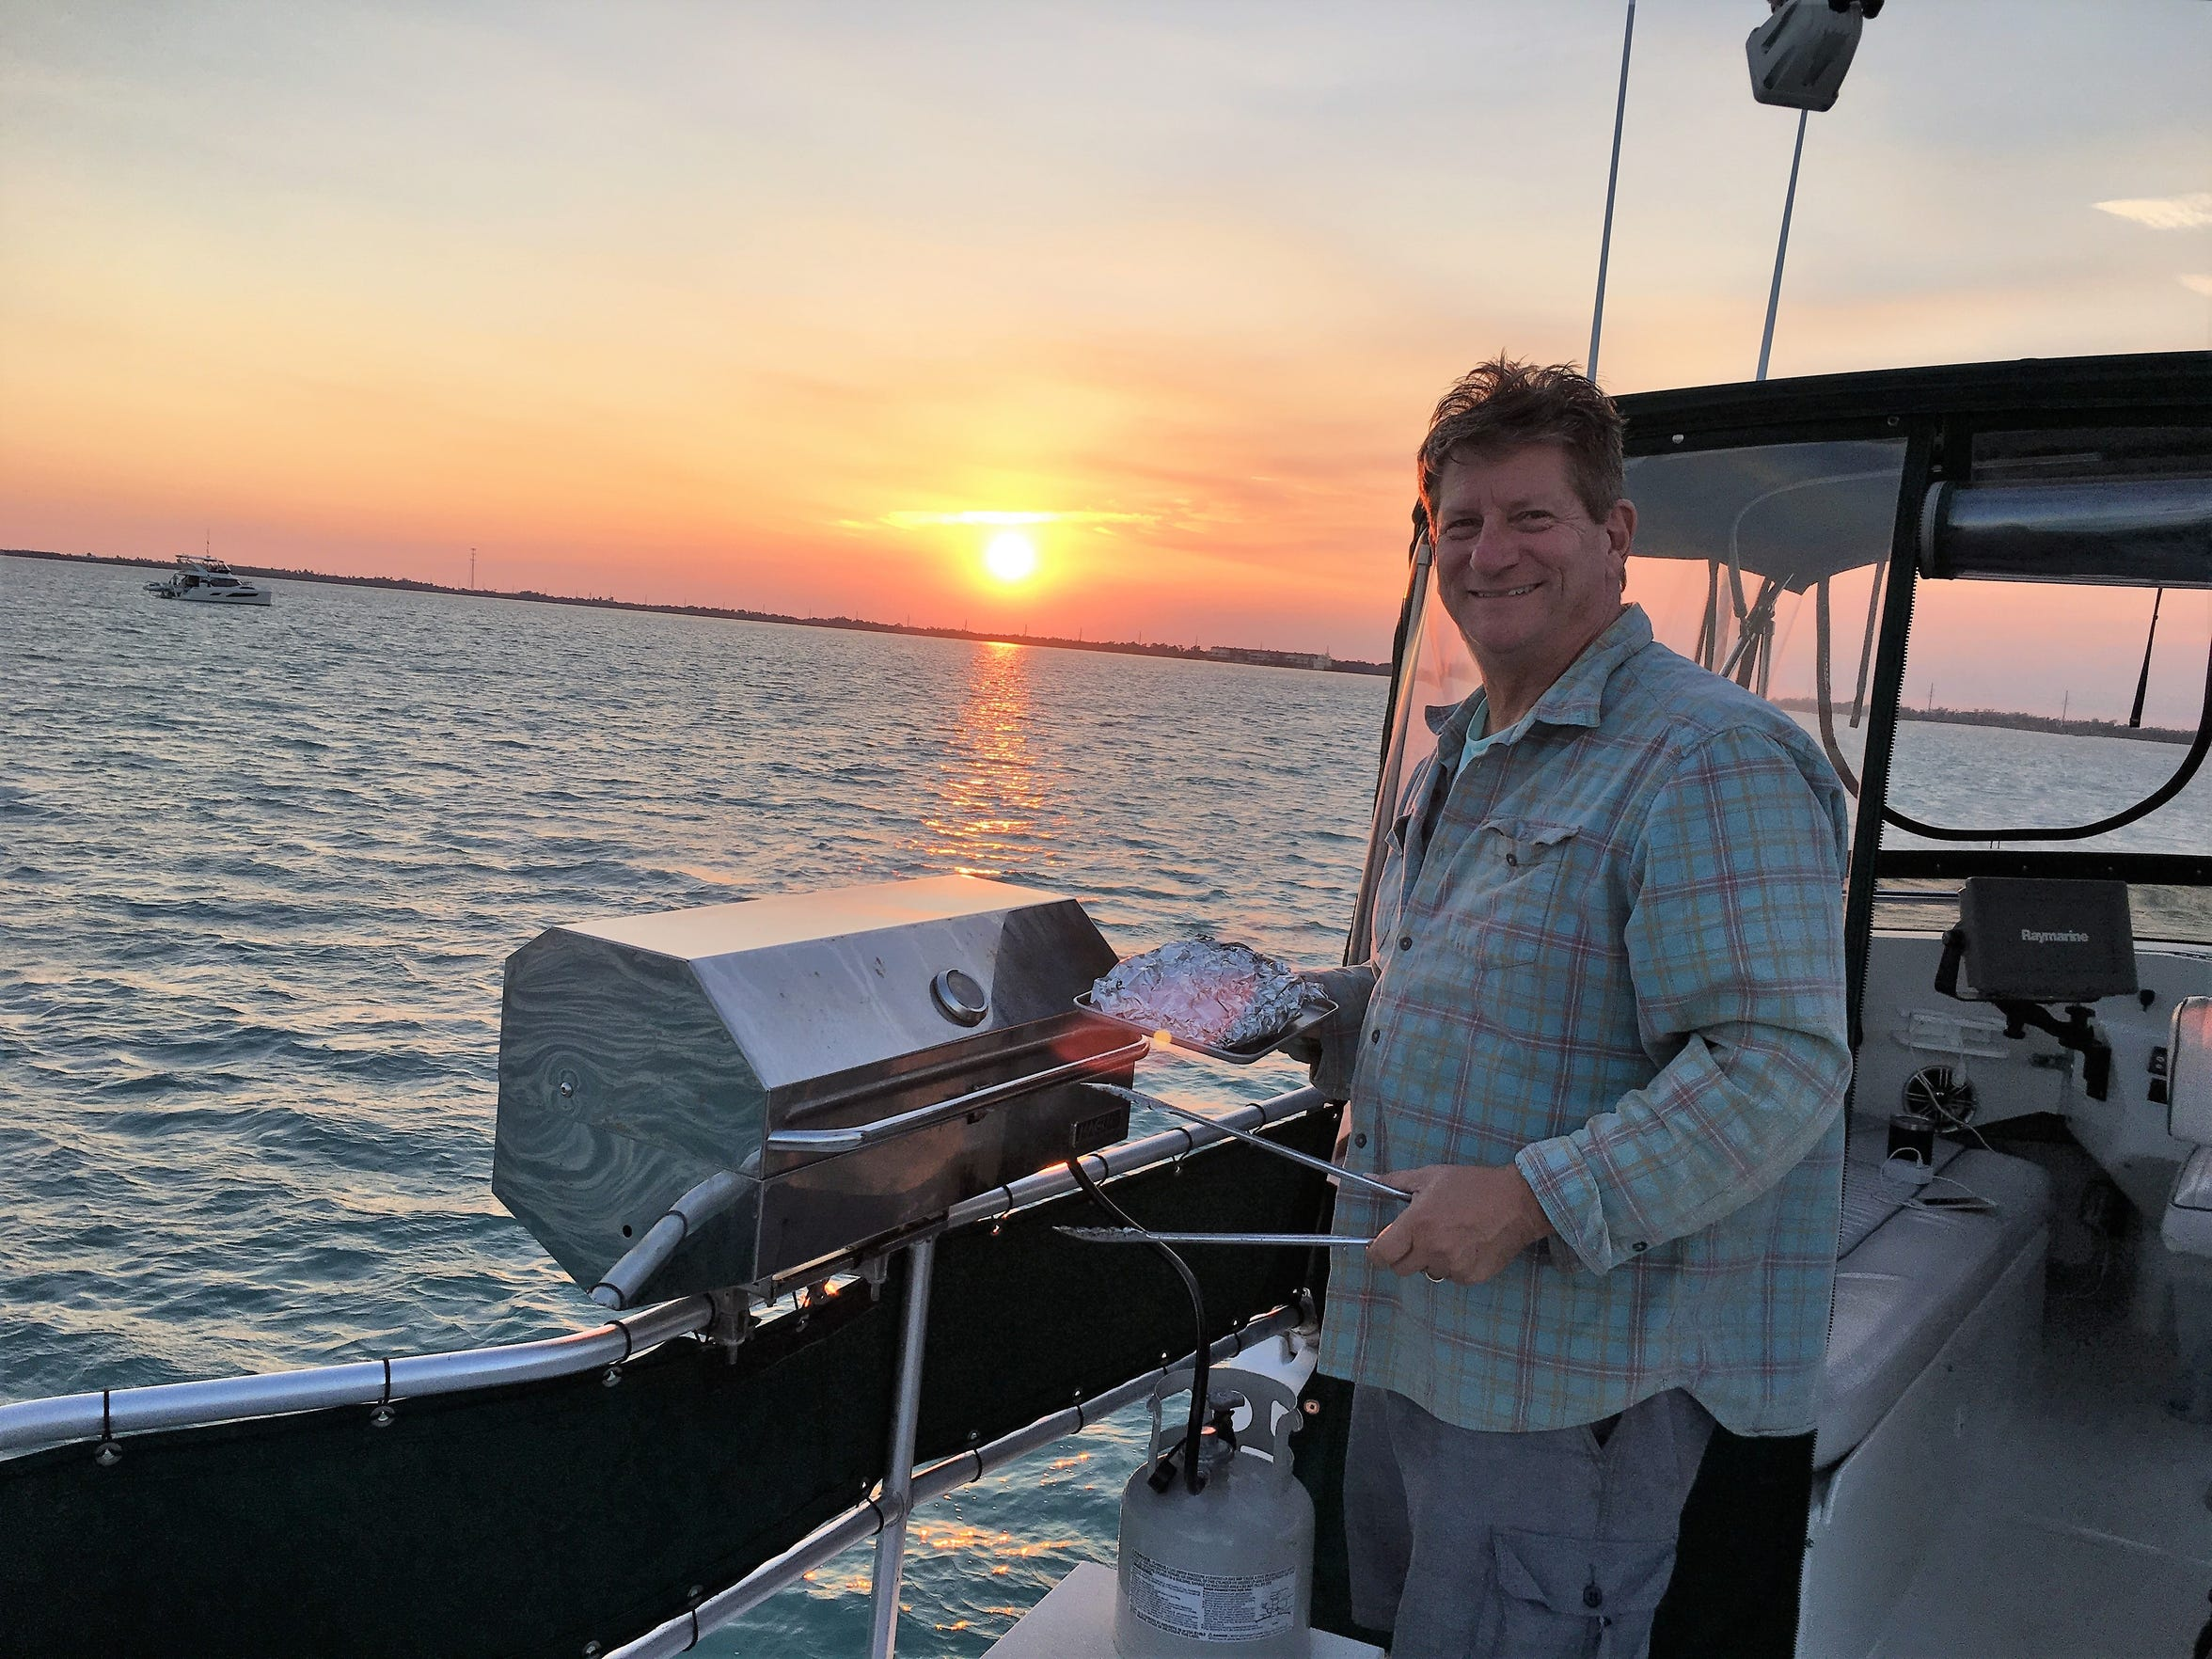 Dave Baker grills on his boat in the Florida Keys during the America's Great Loop journey he and wife Rose took over the course of 11 months.